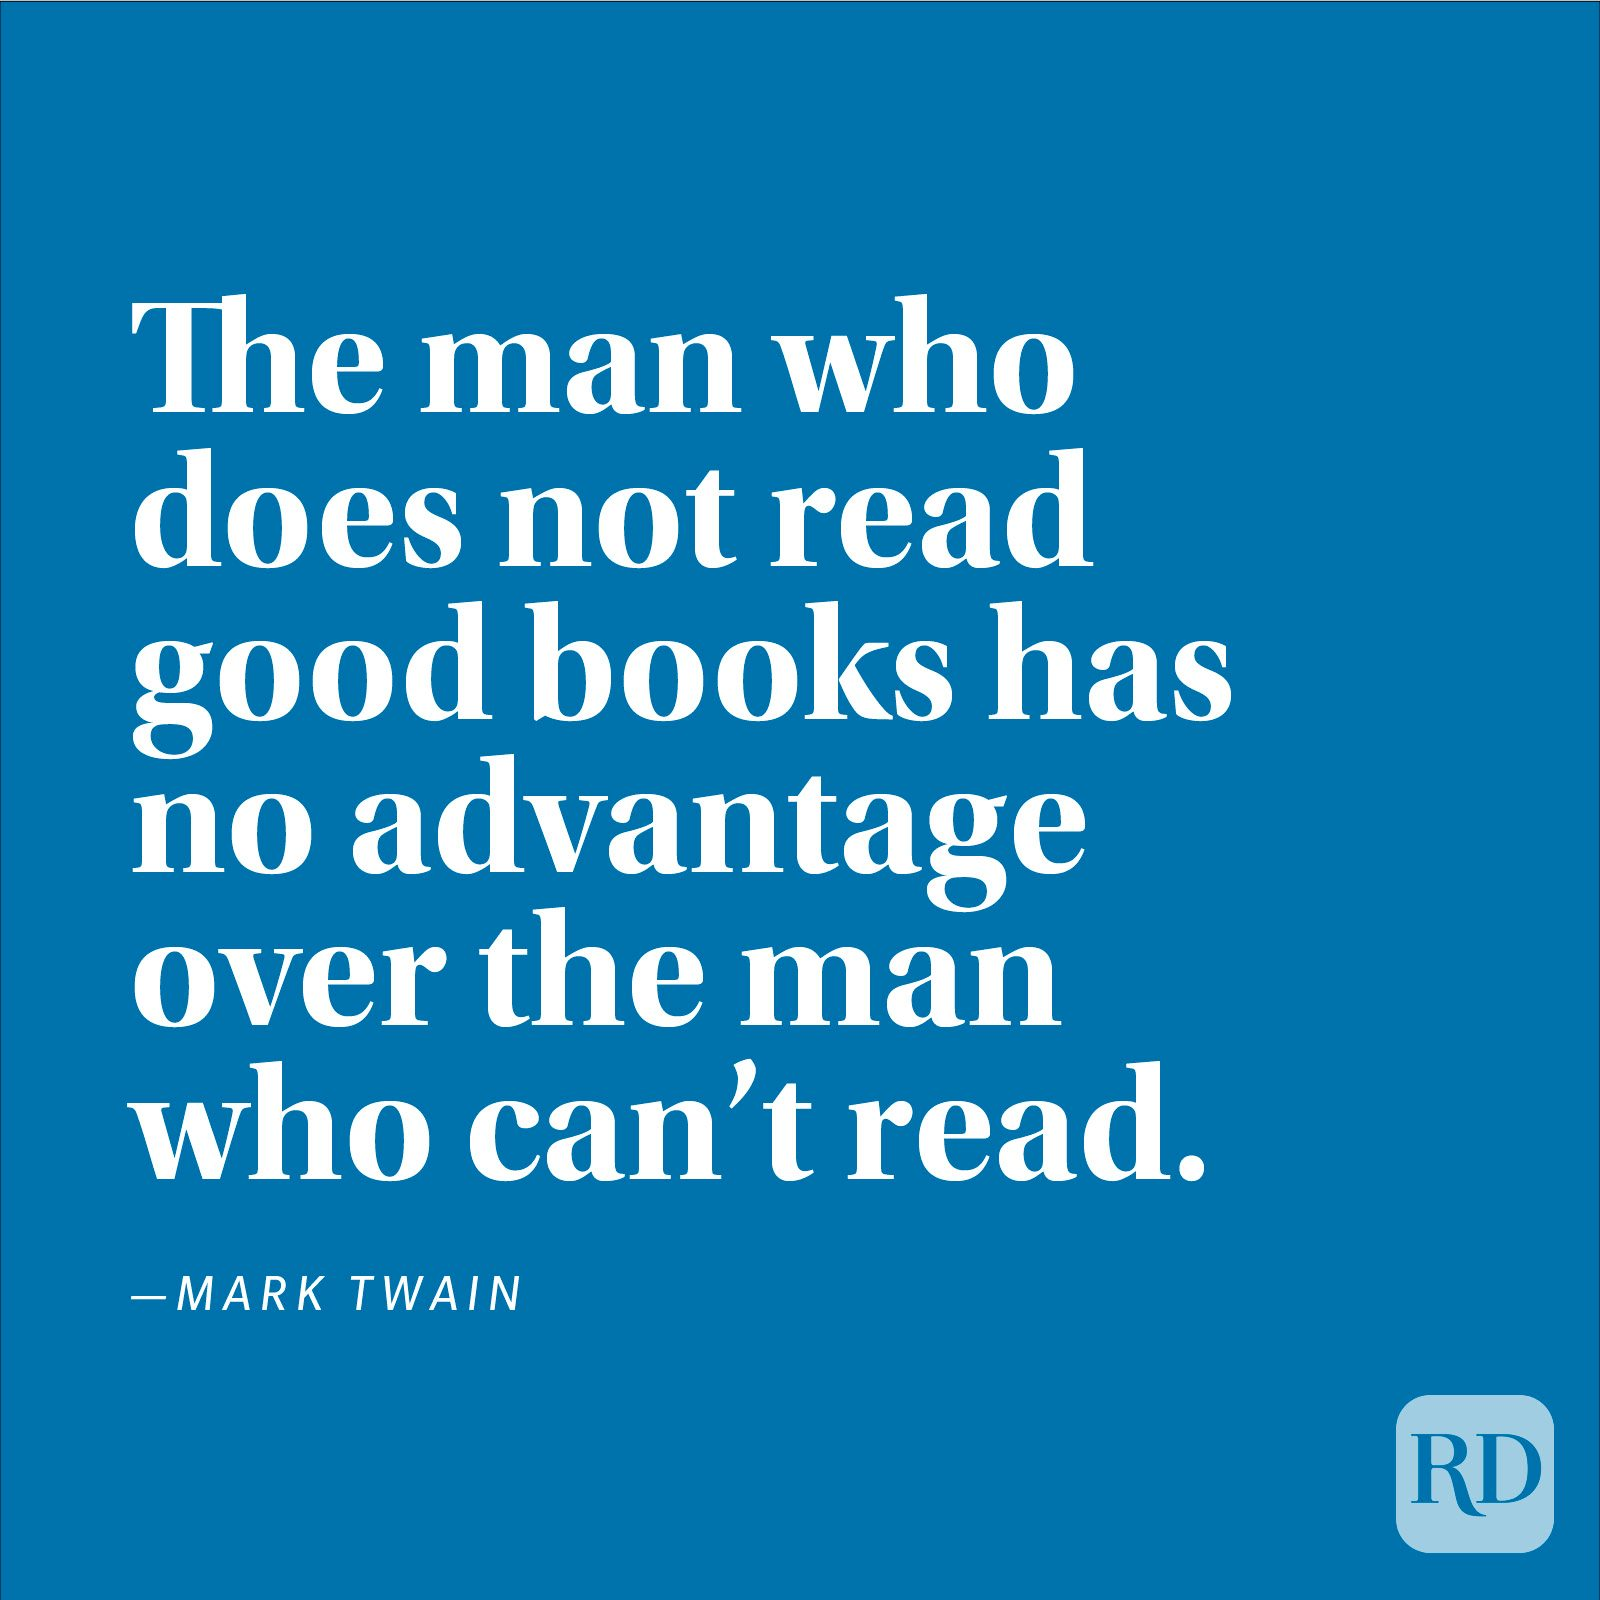 """The man who does not read good books has no advantage over the man who can't read."" —Mark Twain"